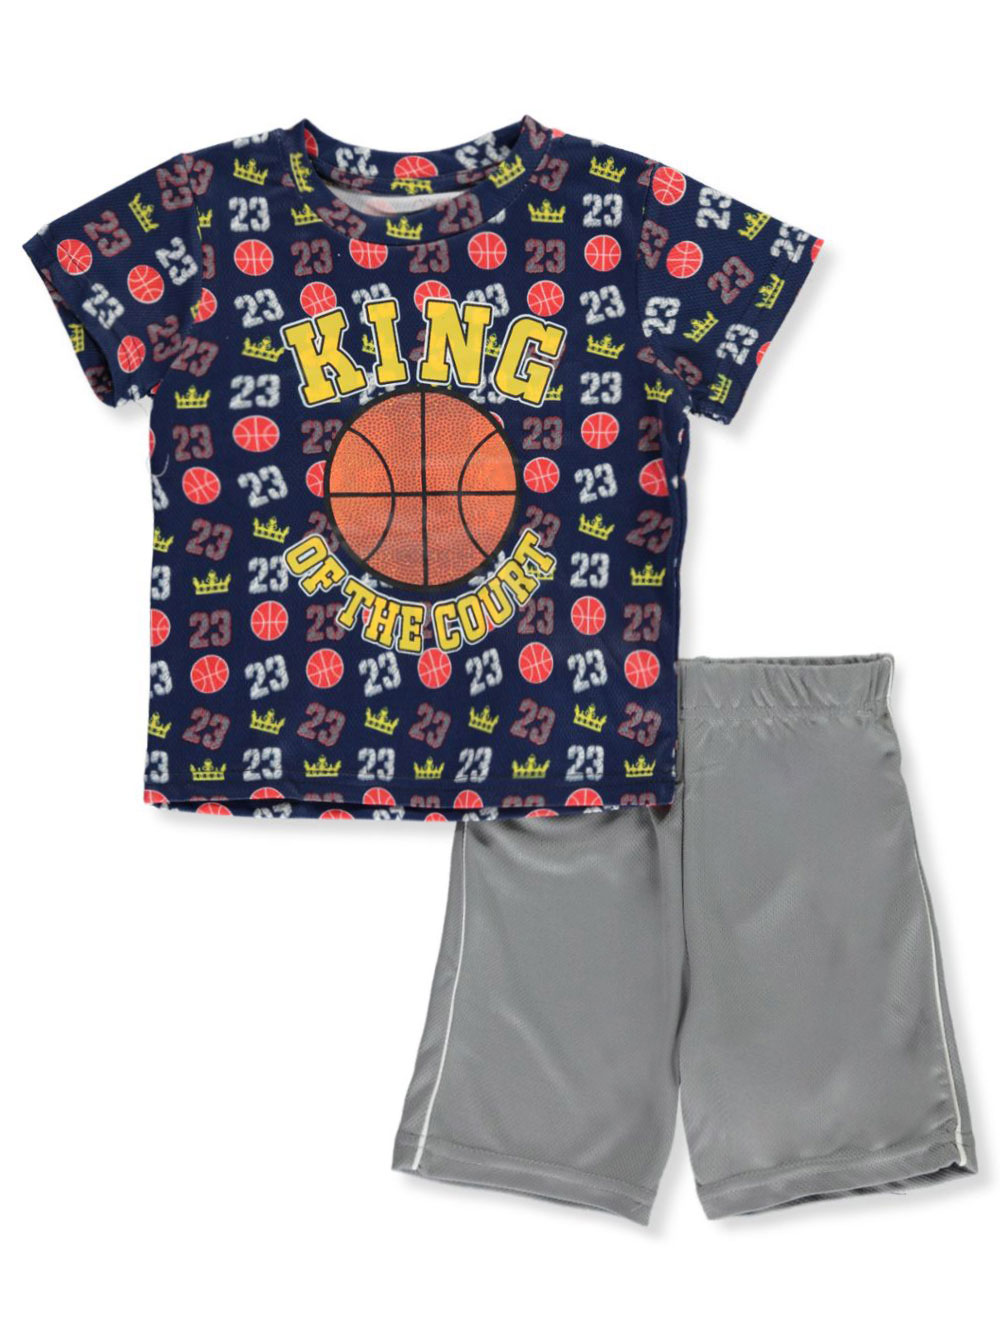 Boys Navy and Multicolor Sets